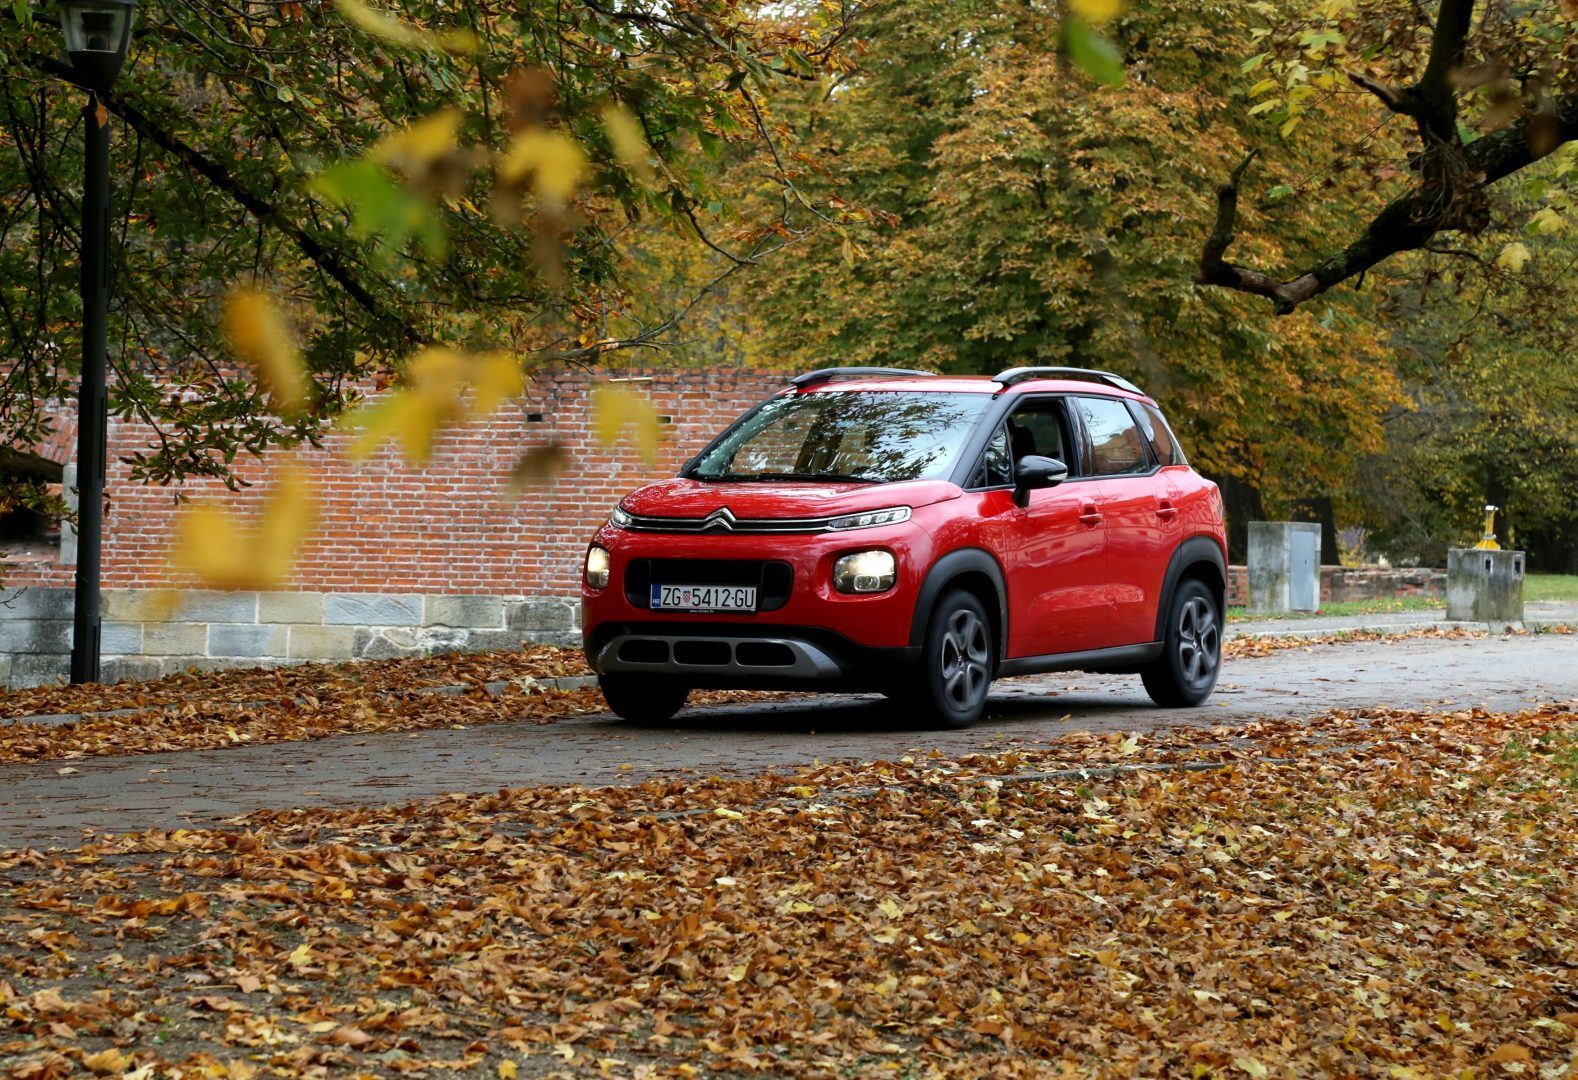 TEST Citroen C3 Aircross 1.2 Puretech 110 Feel